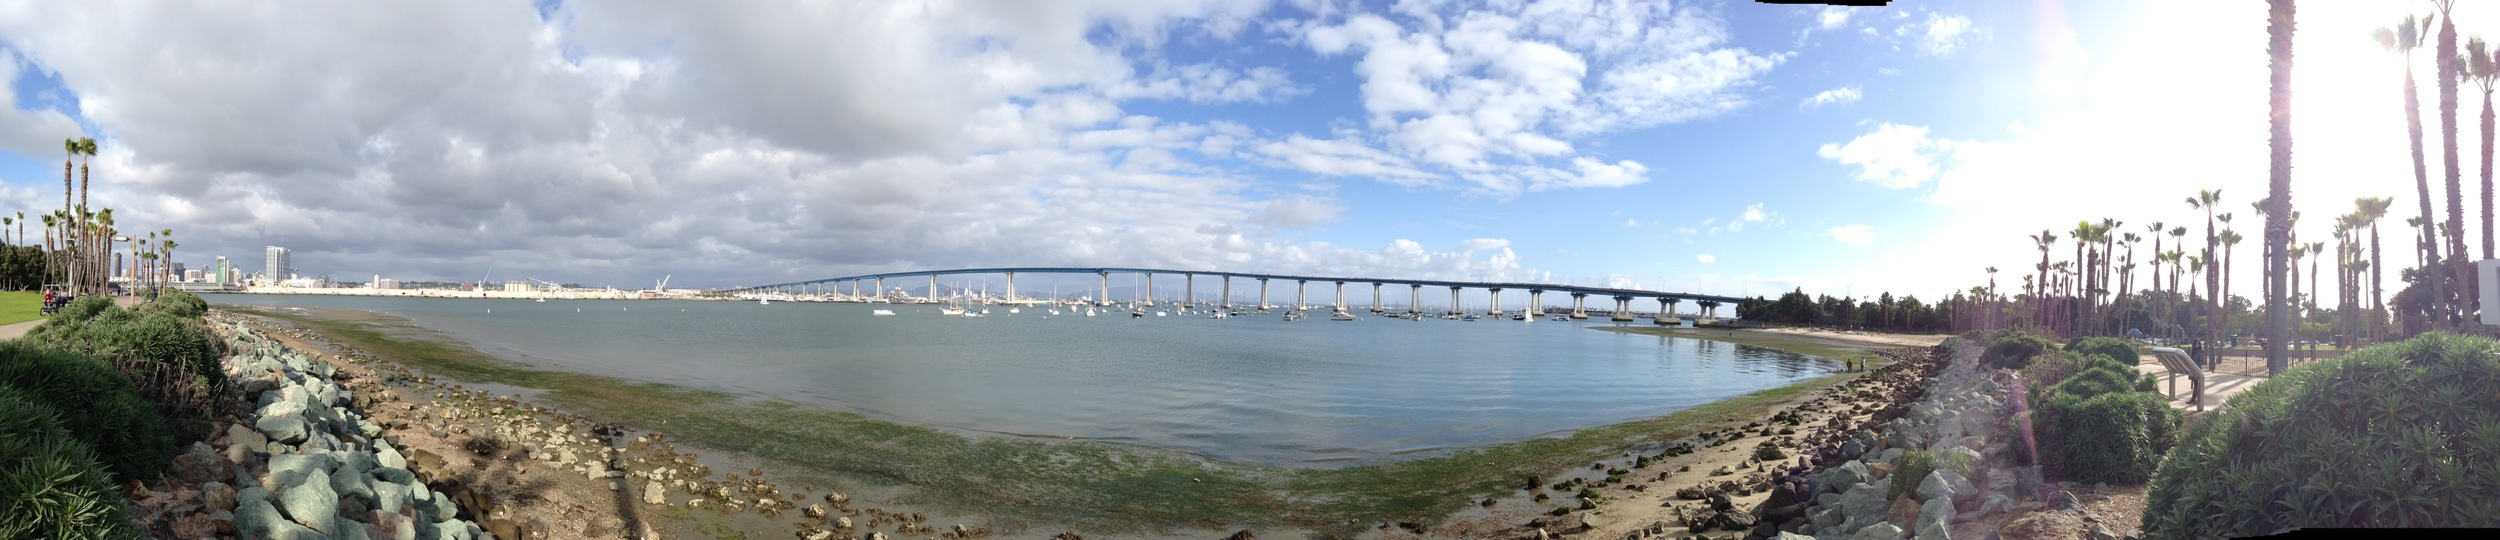 Panorama taken from the park- this is the bridge that we crossed.